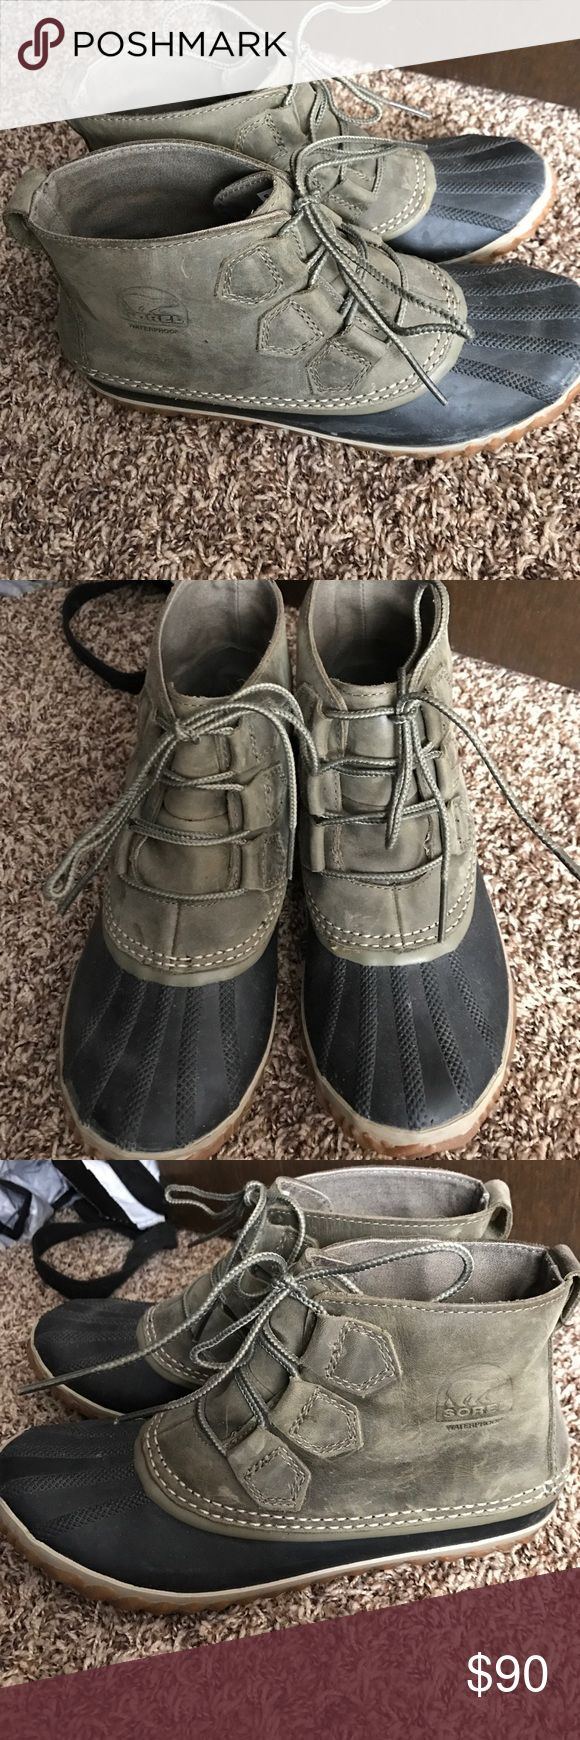 Sorel rain boots from free people, never worn Sorel rain boots from free people, never worn Sorel Shoes Winter & Rain Boots